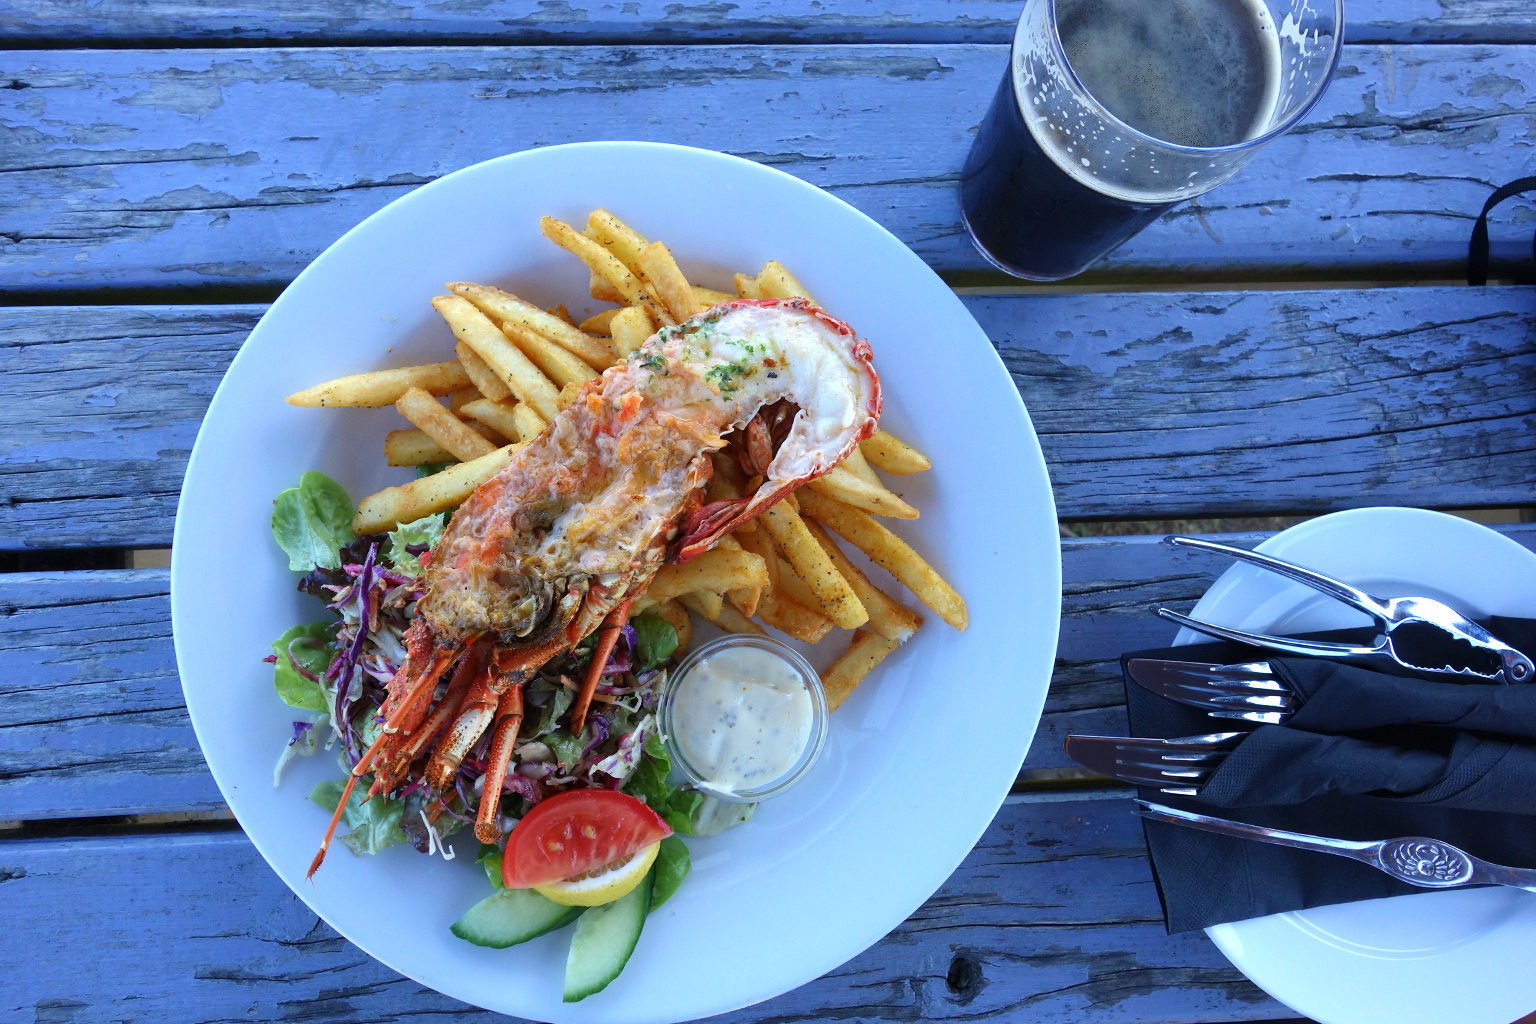 Pier Hotel Crayfish in Kaikoura, NZ